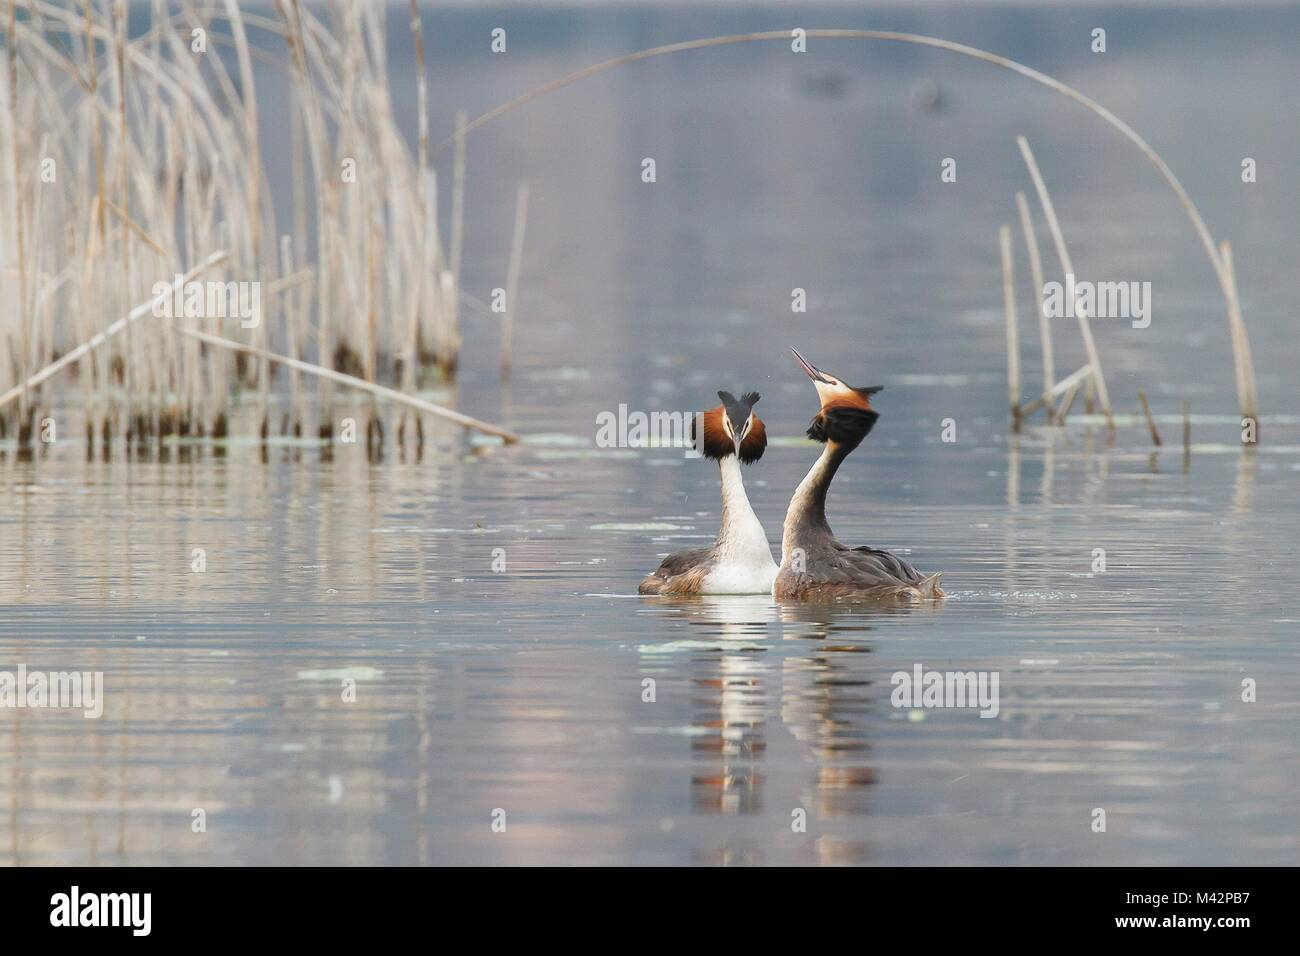 Iseo Lake, Lombardy, Italy. Great crested grebe. - Stock Image